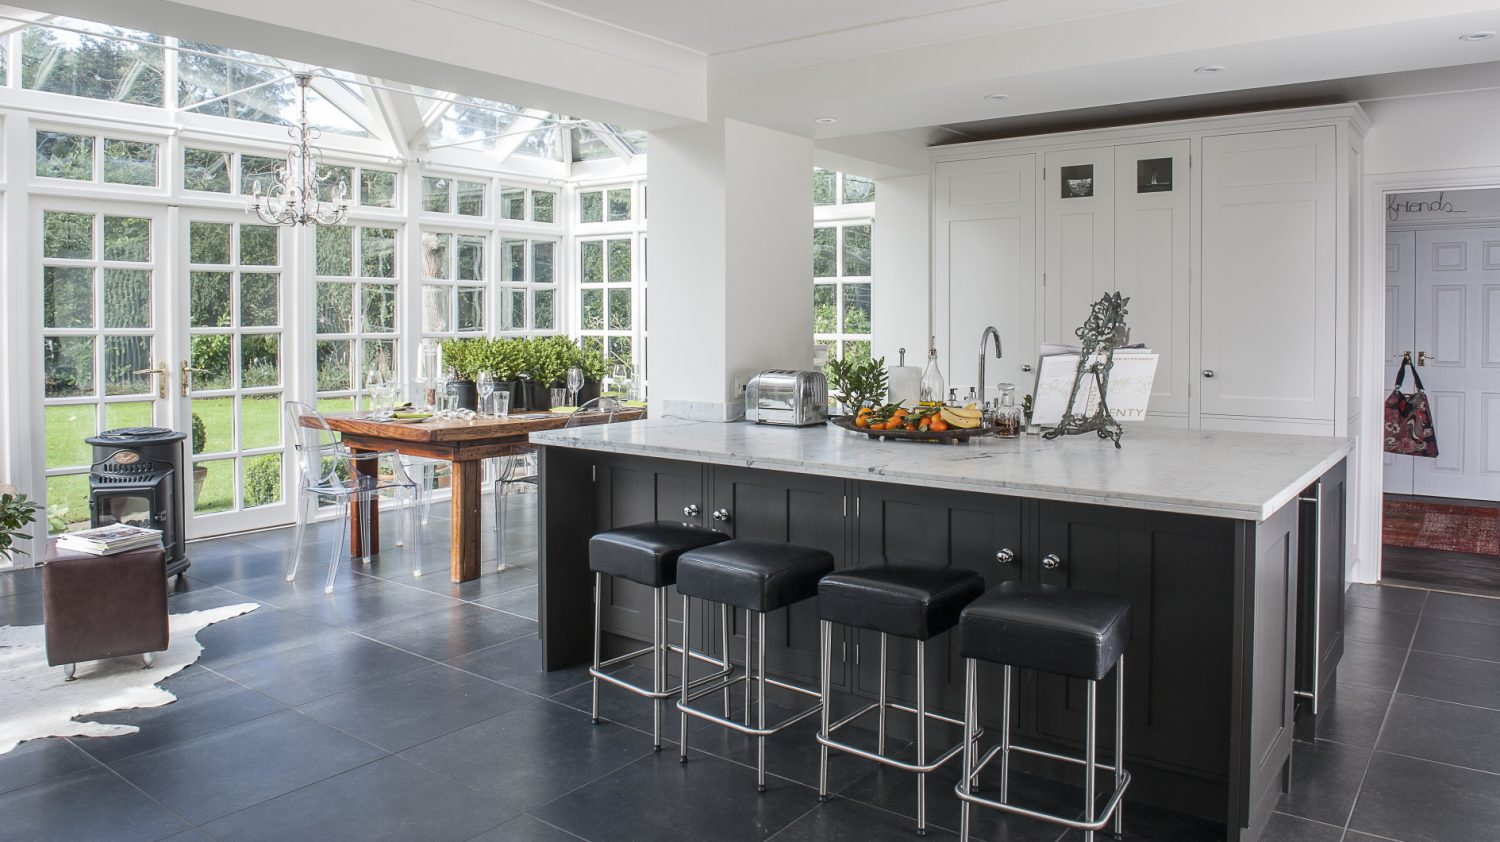 The ground floor was completely redesigned to accommodate a superb open-plan kitchen and conservatory space